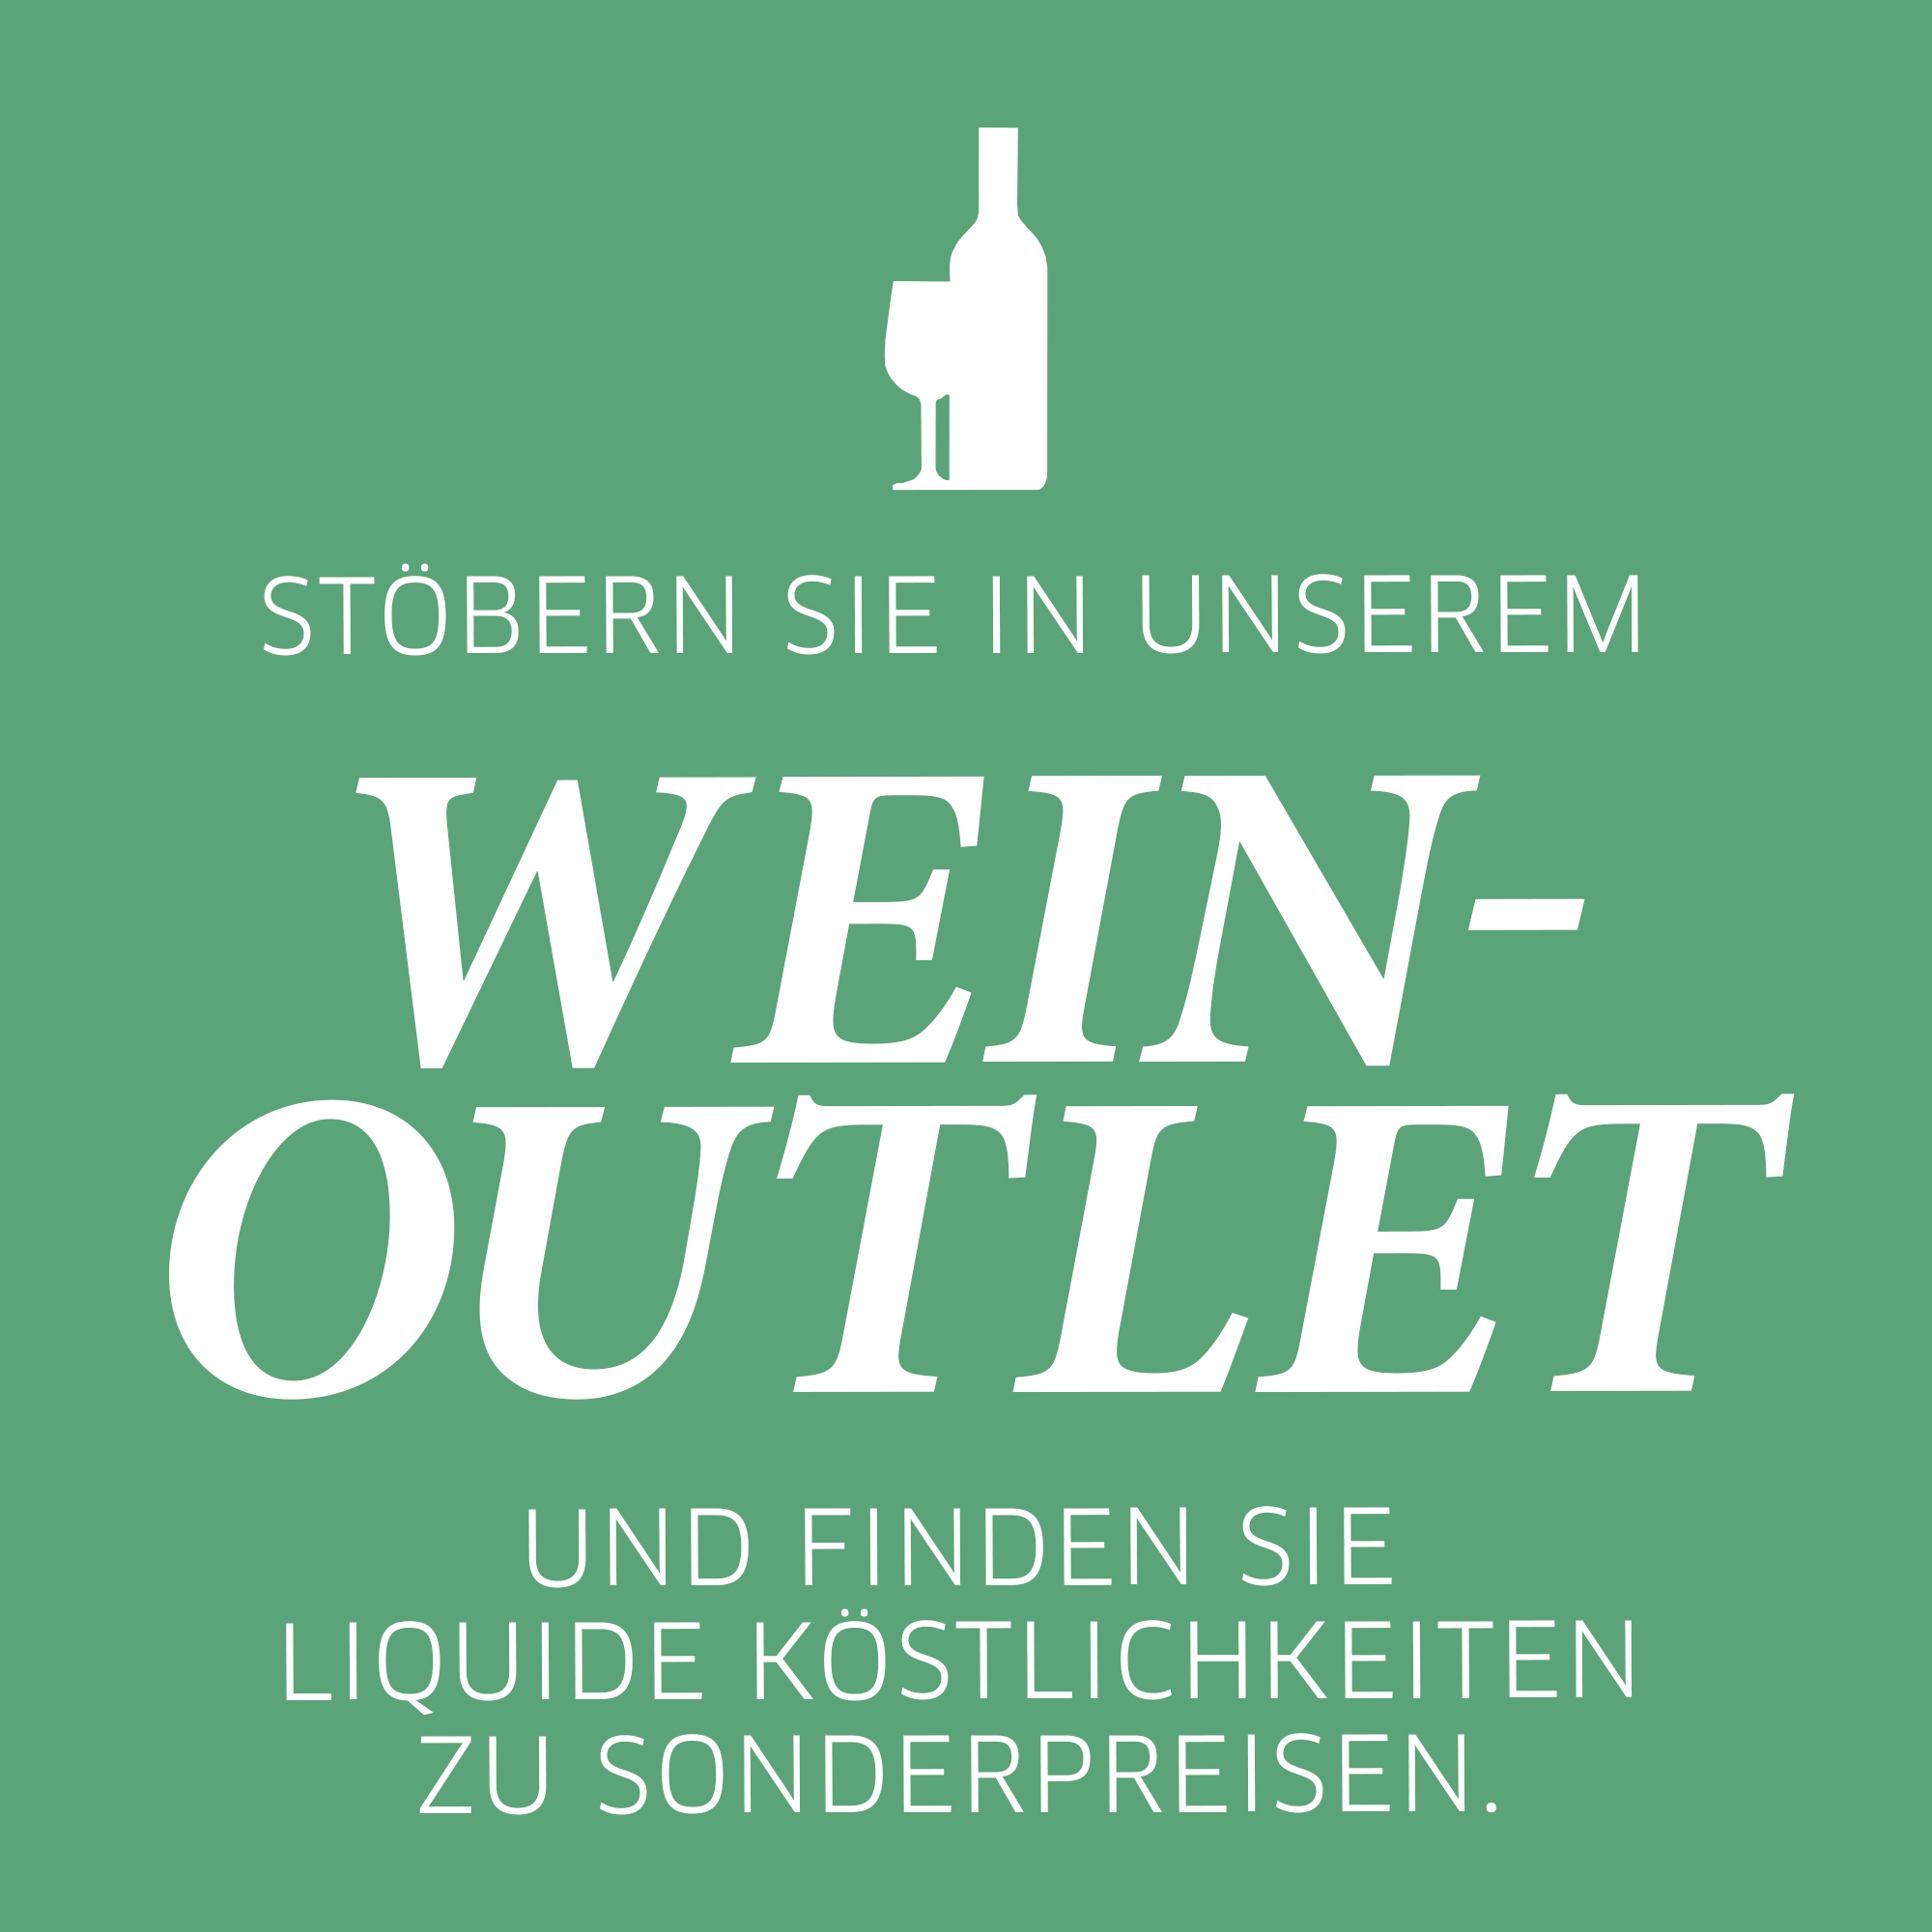 Wein OUTLET.jpg